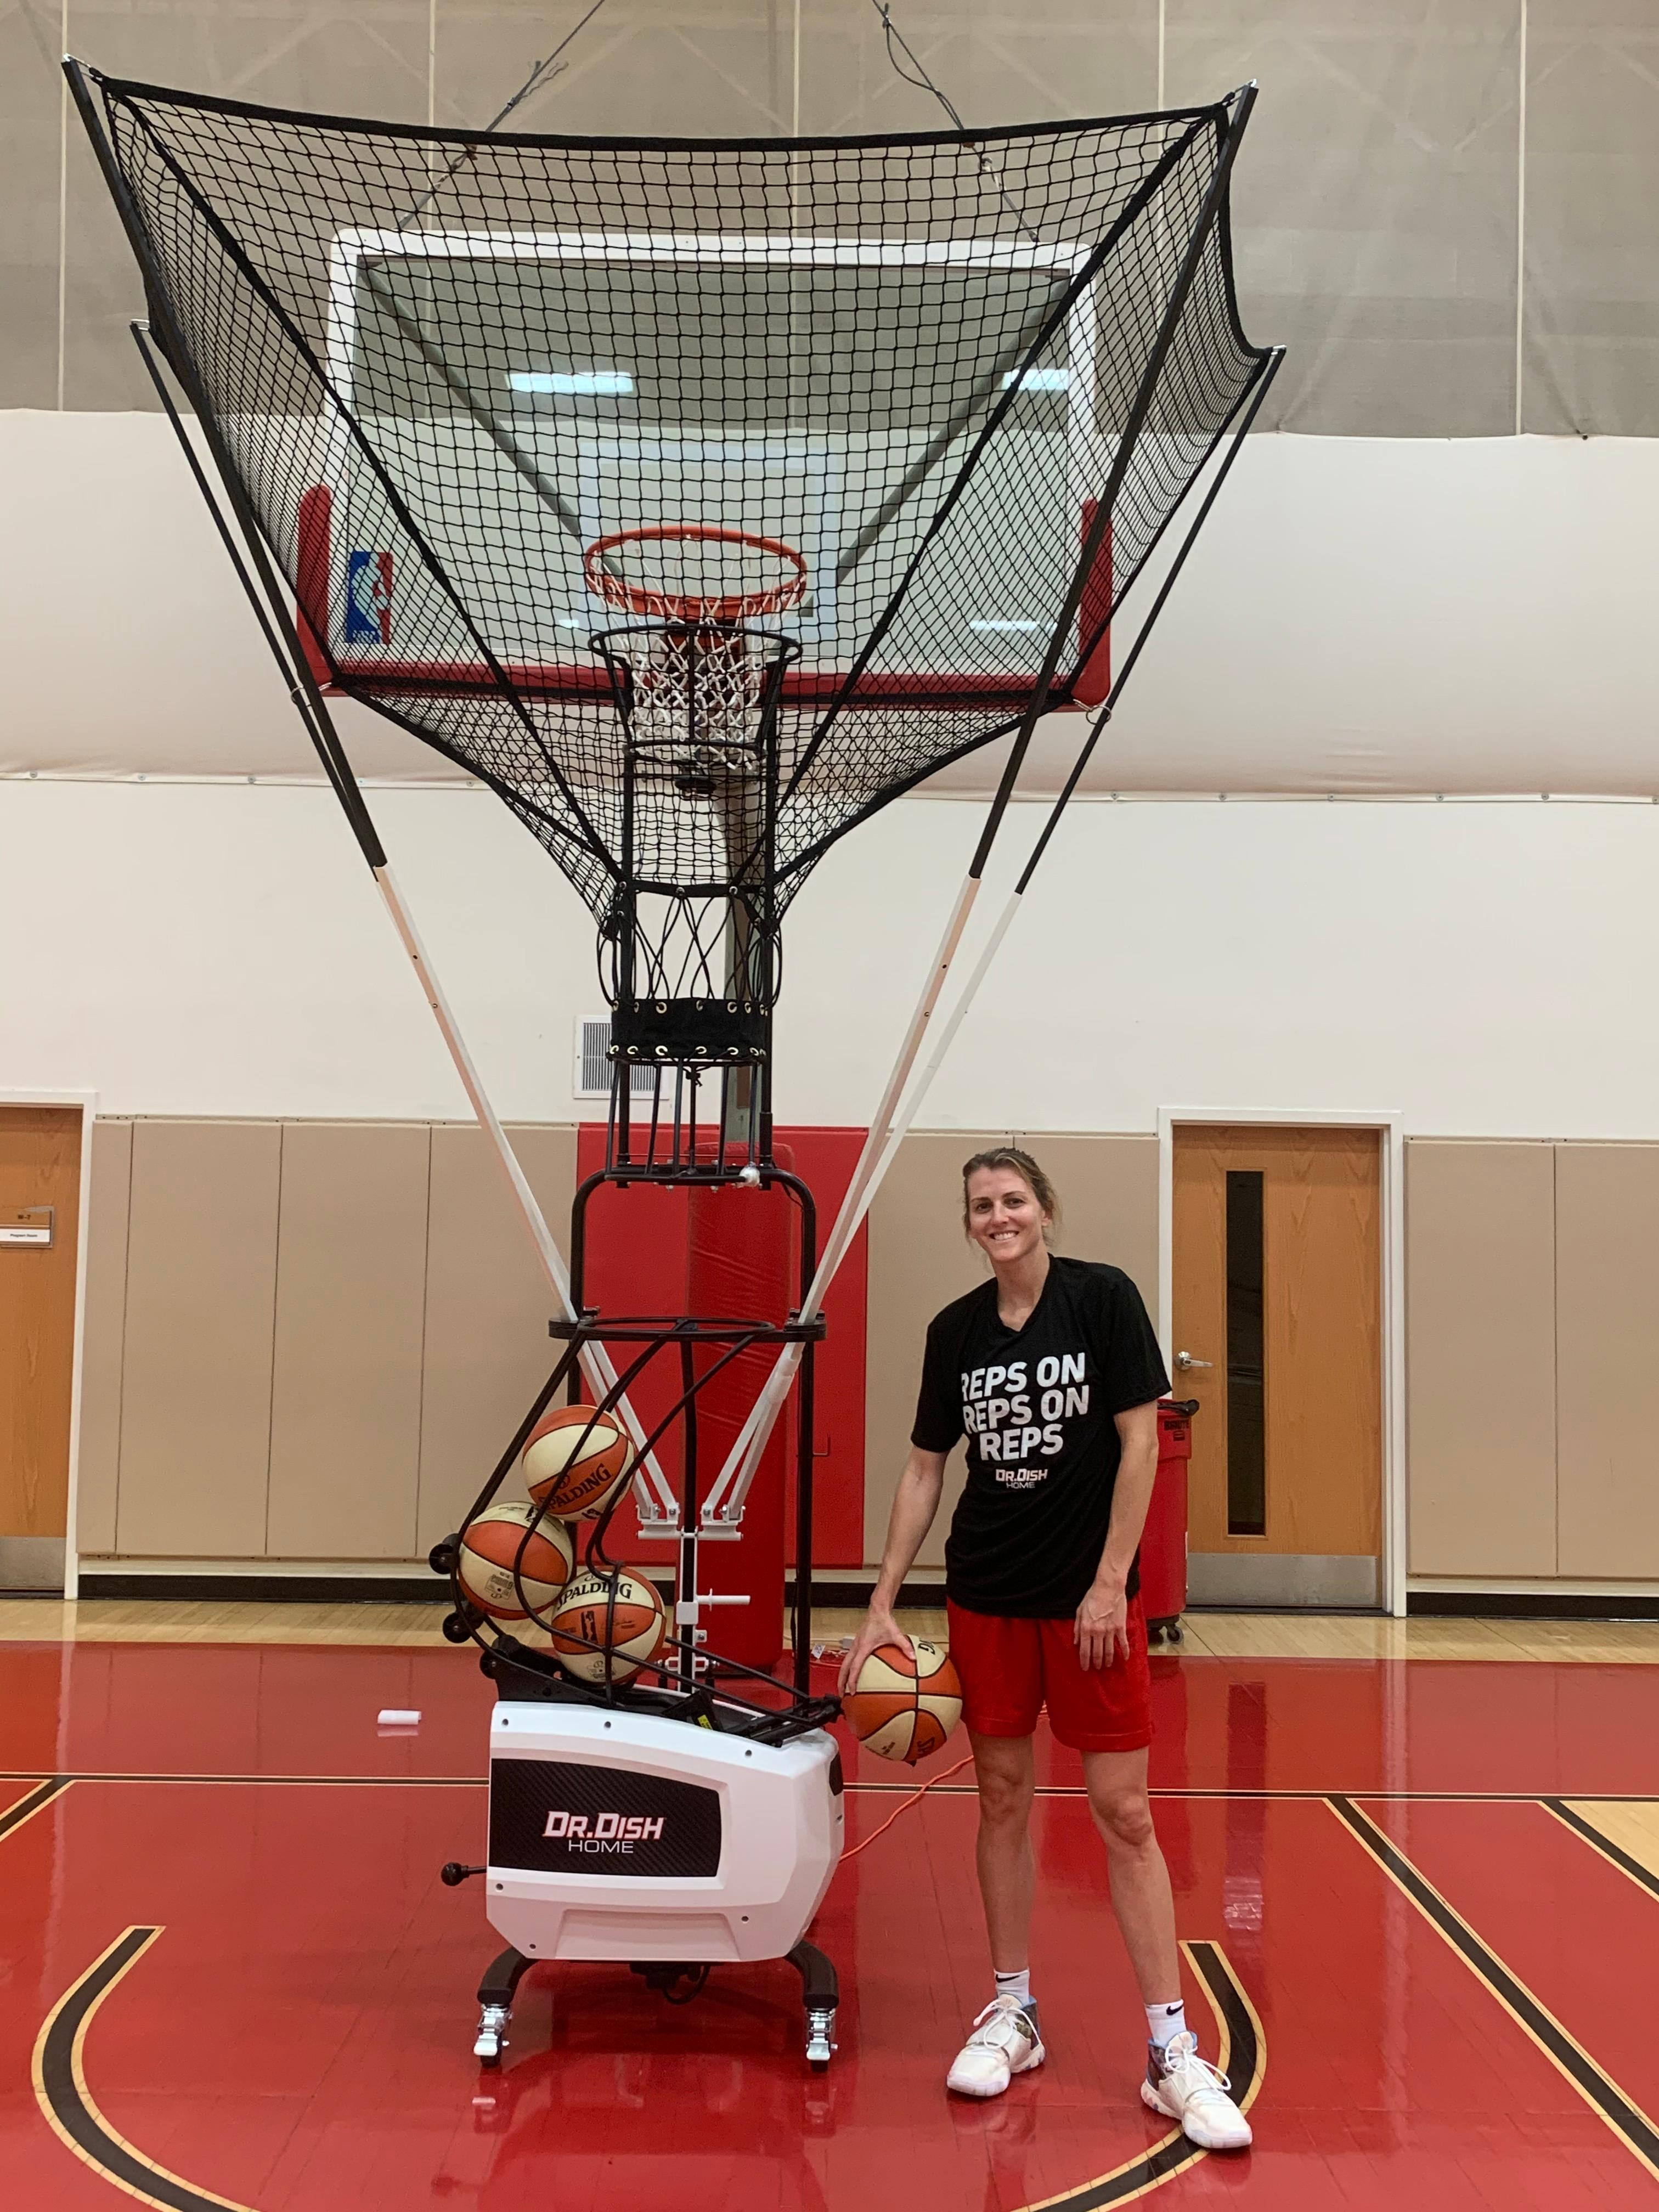 WNBA All-Star Allie Quigley Chooses Dr. Dish